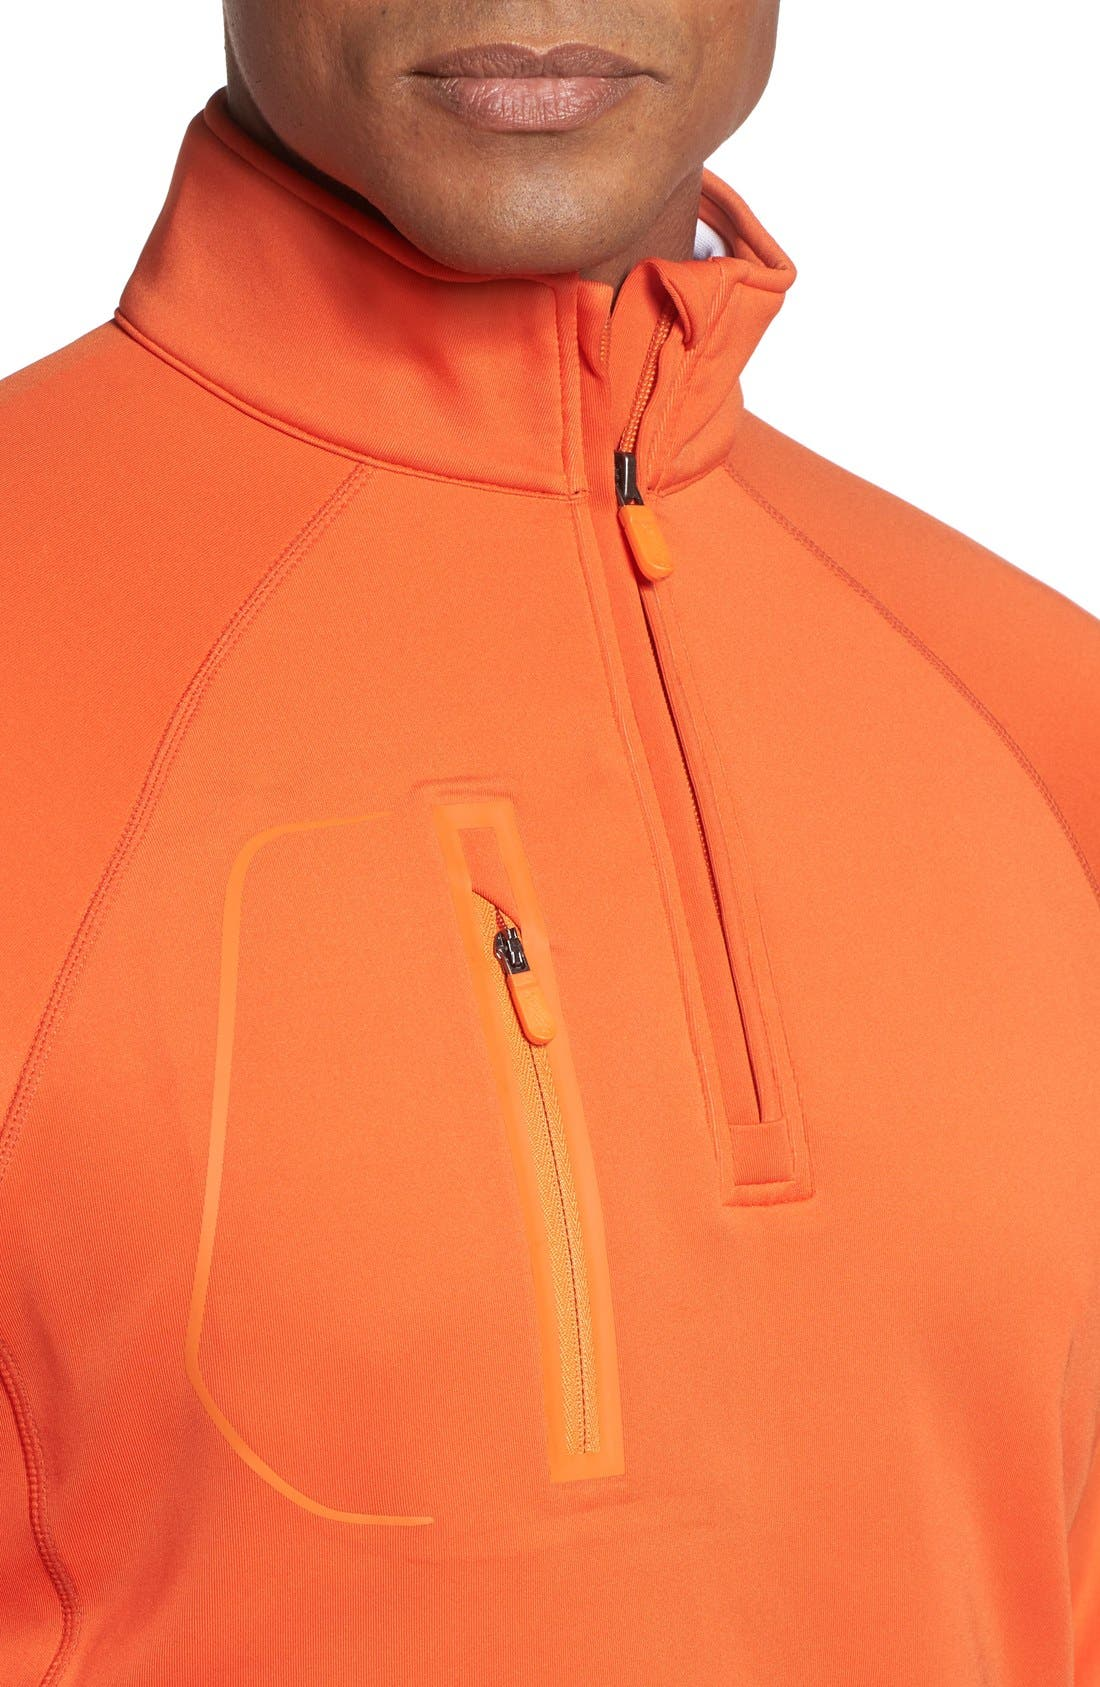 XH2O Crawford Stretch Quarter Zip Golf Pullover,                             Alternate thumbnail 52, color,